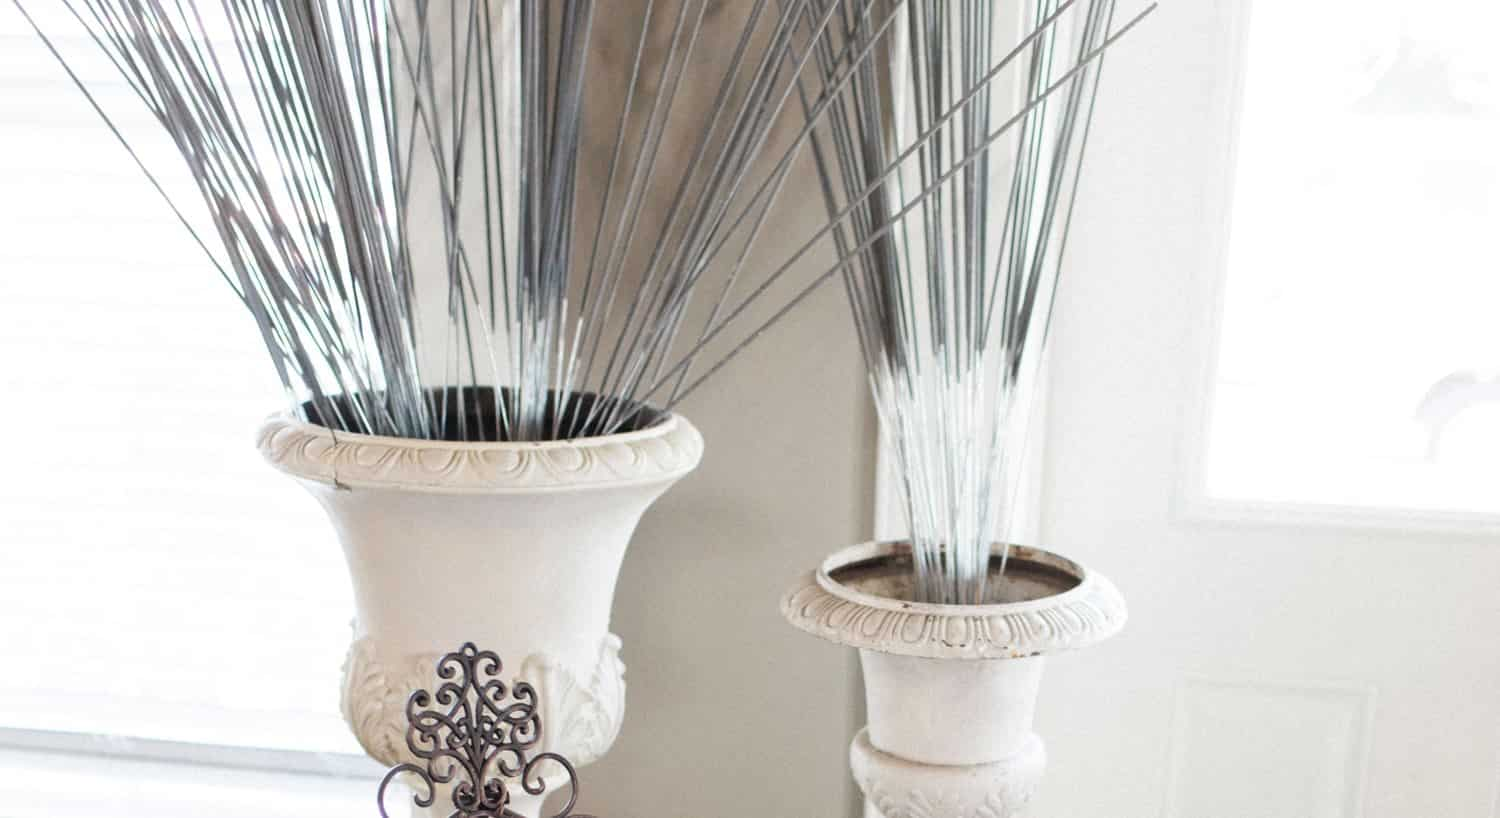 Two ivory decorative vases filled with tall gray-green sticks